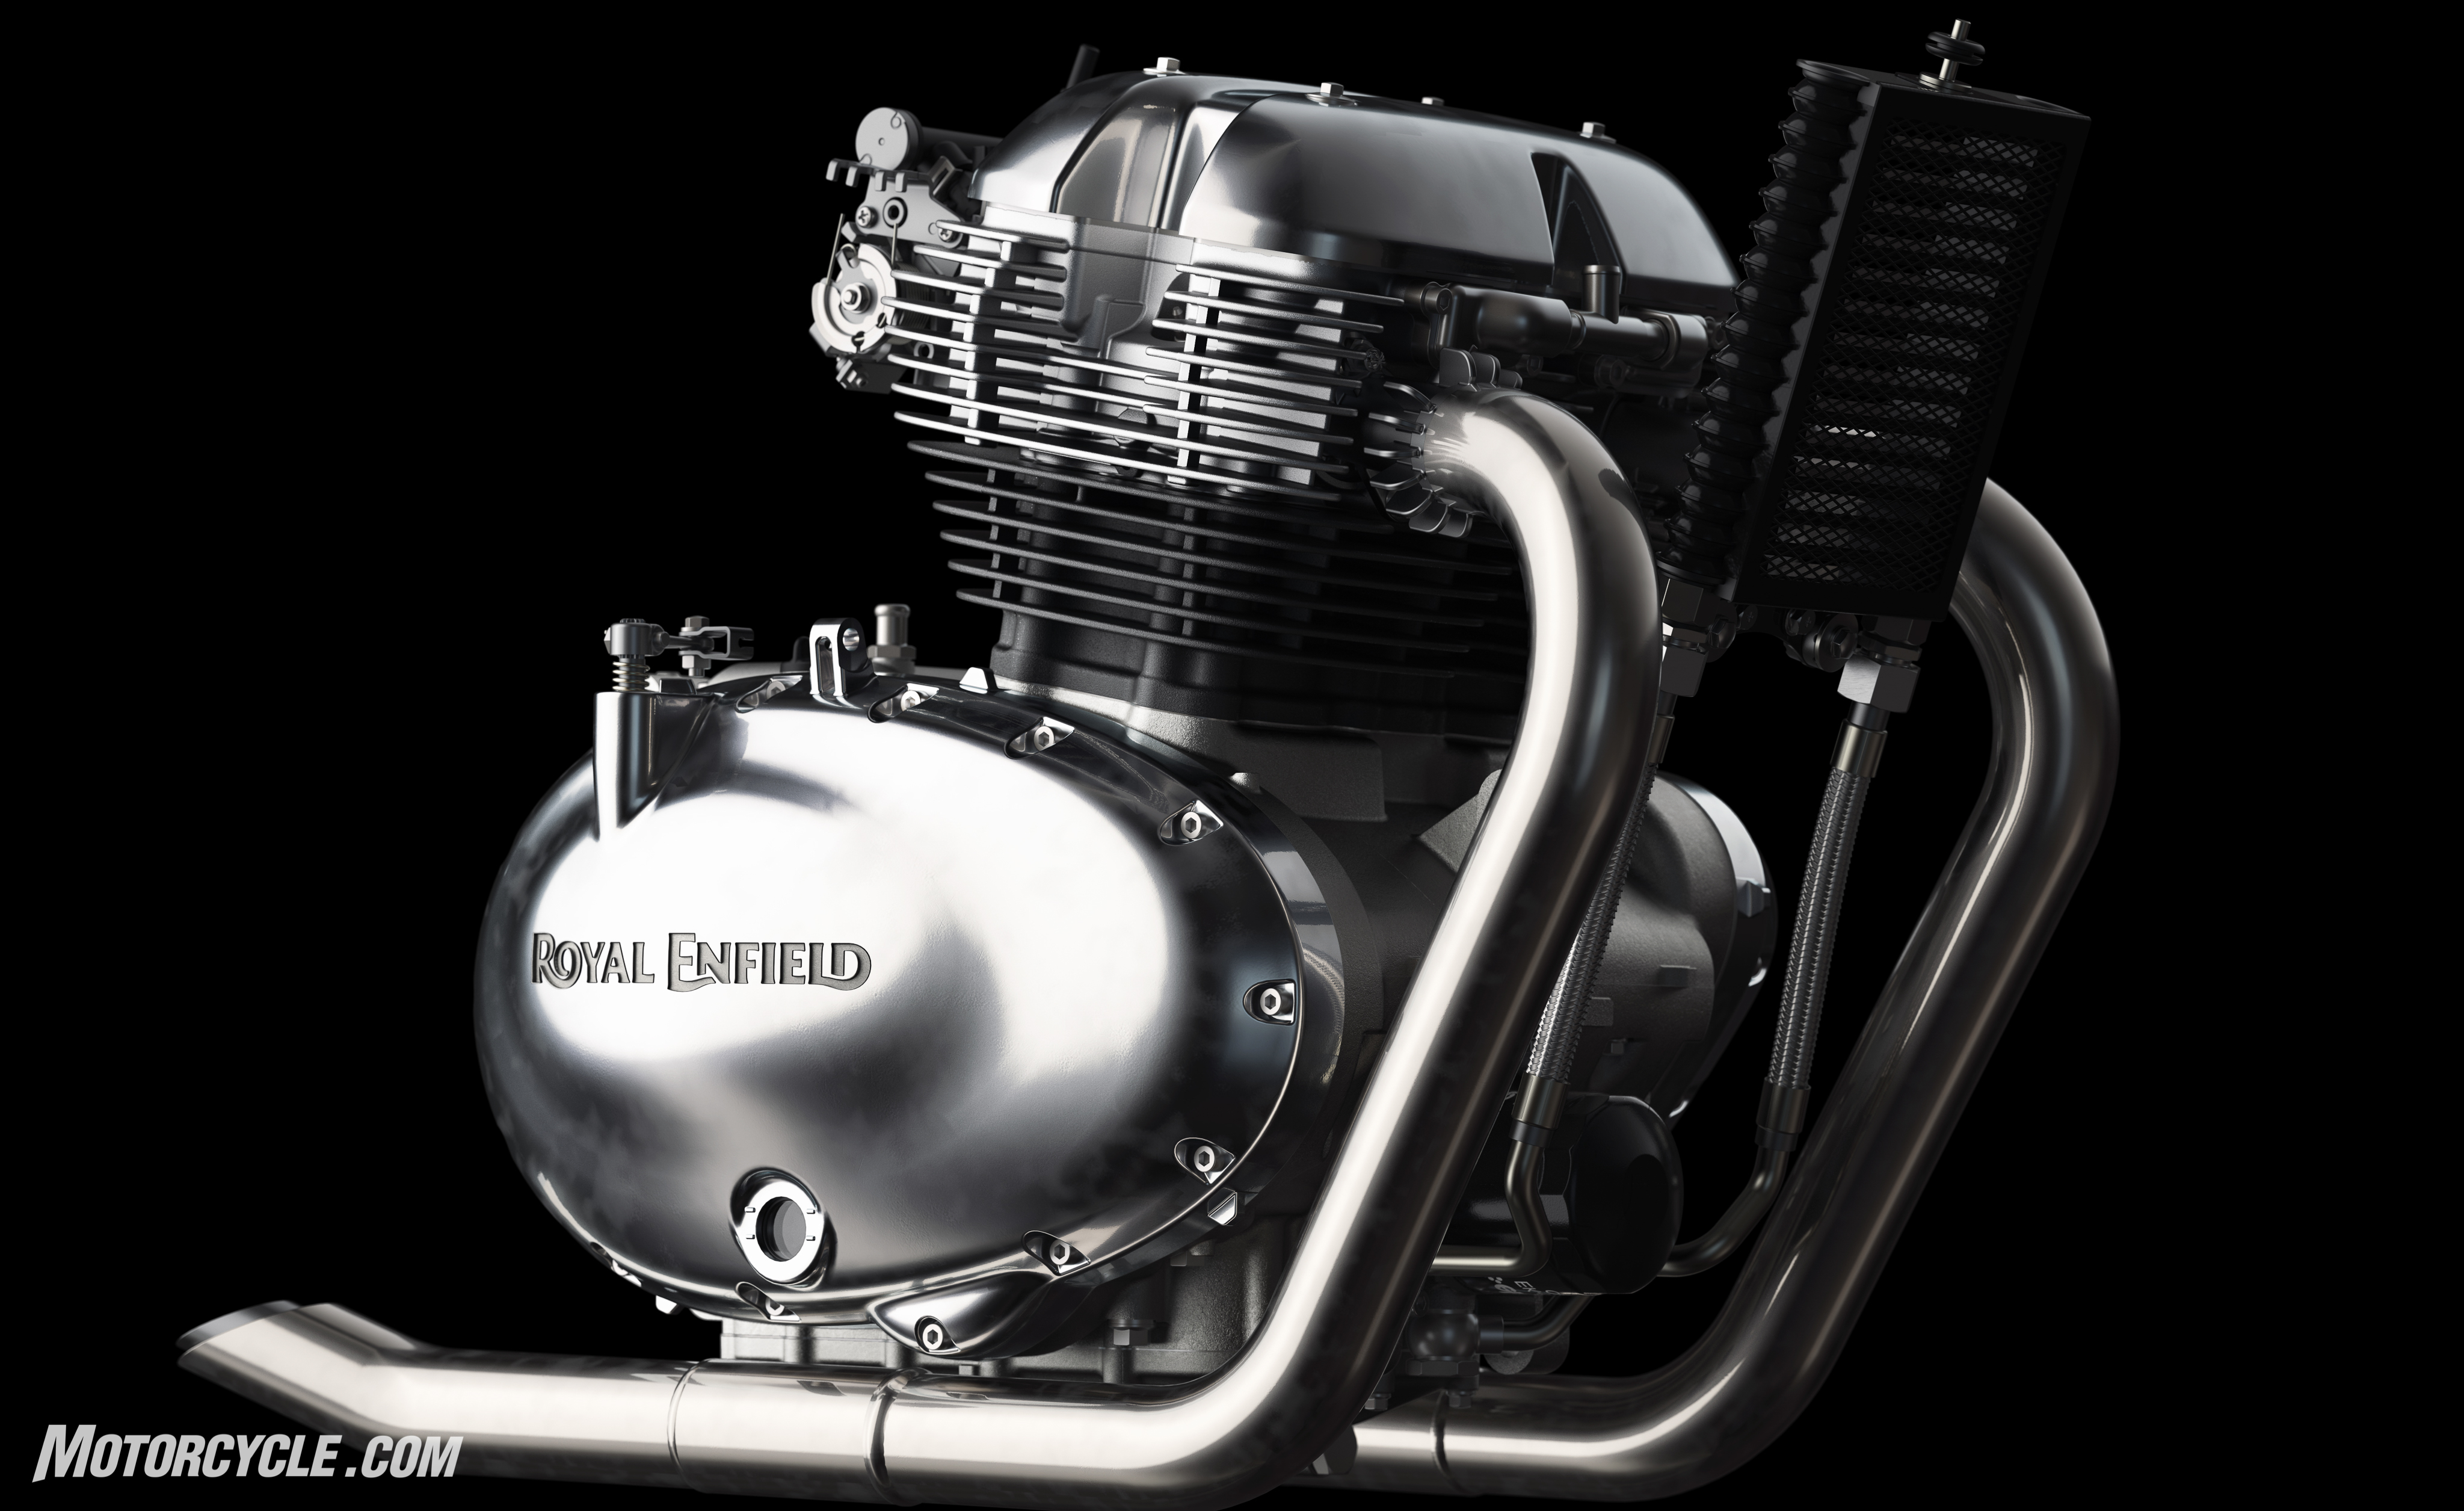 2019 Royal Enfield Continental Gt 650 And Interceptor 650 Review